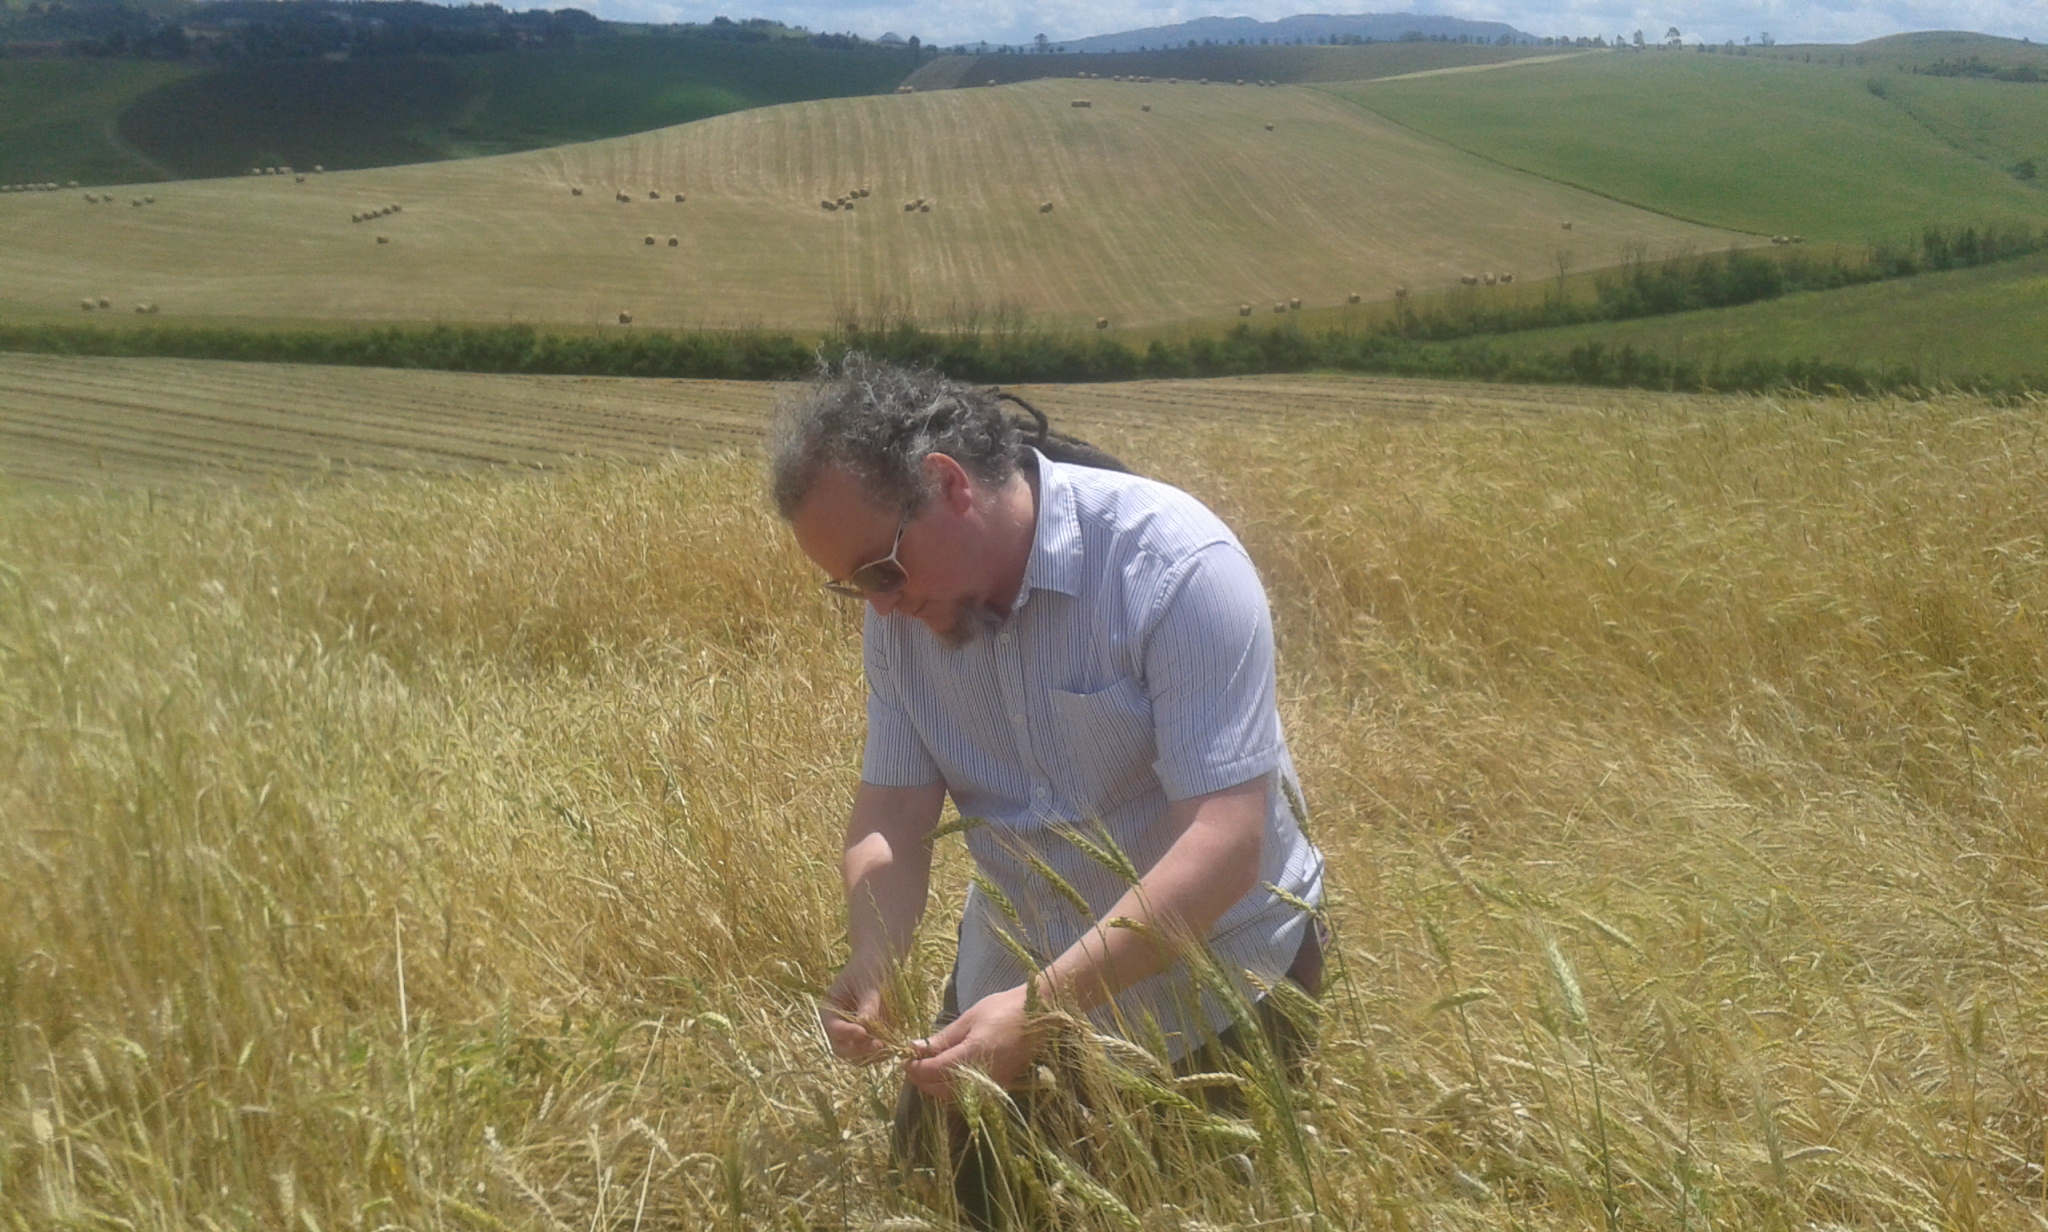 Oliver Moore of ARC2020 on Floriddia farm Italy